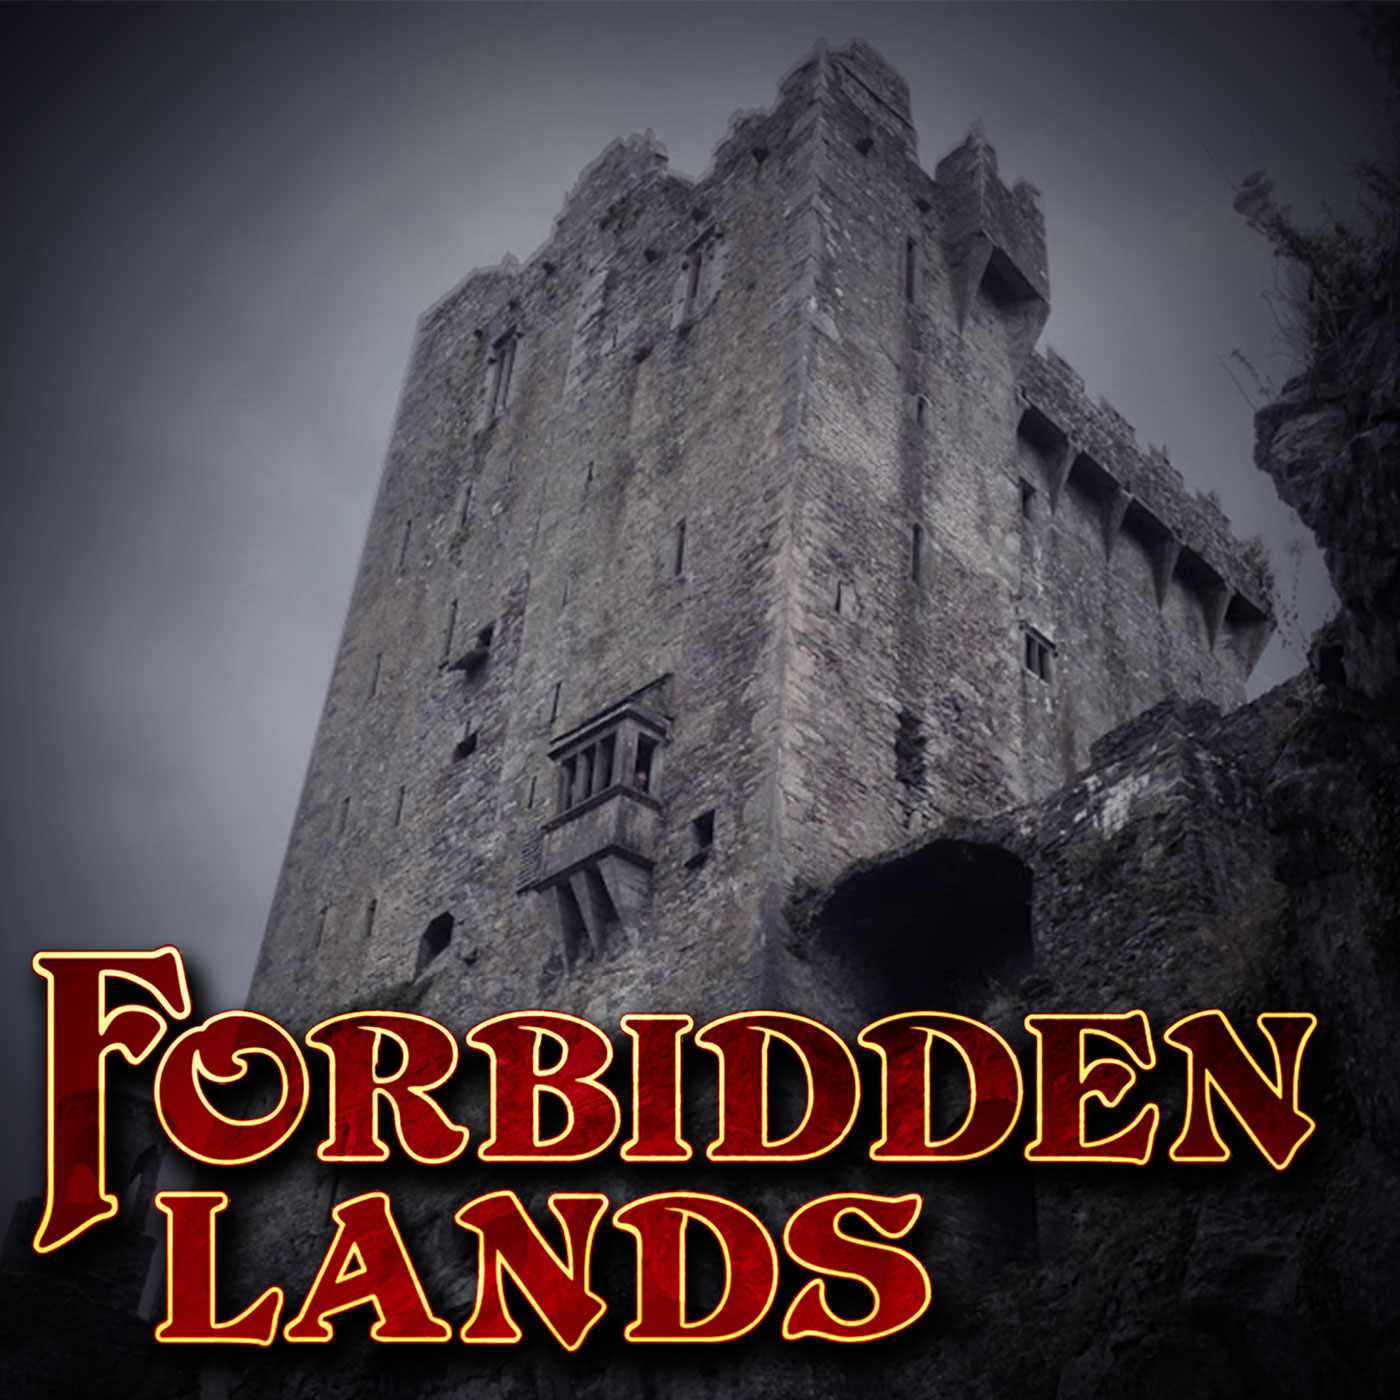 Forbidden-Lands-No-Logo.jpg